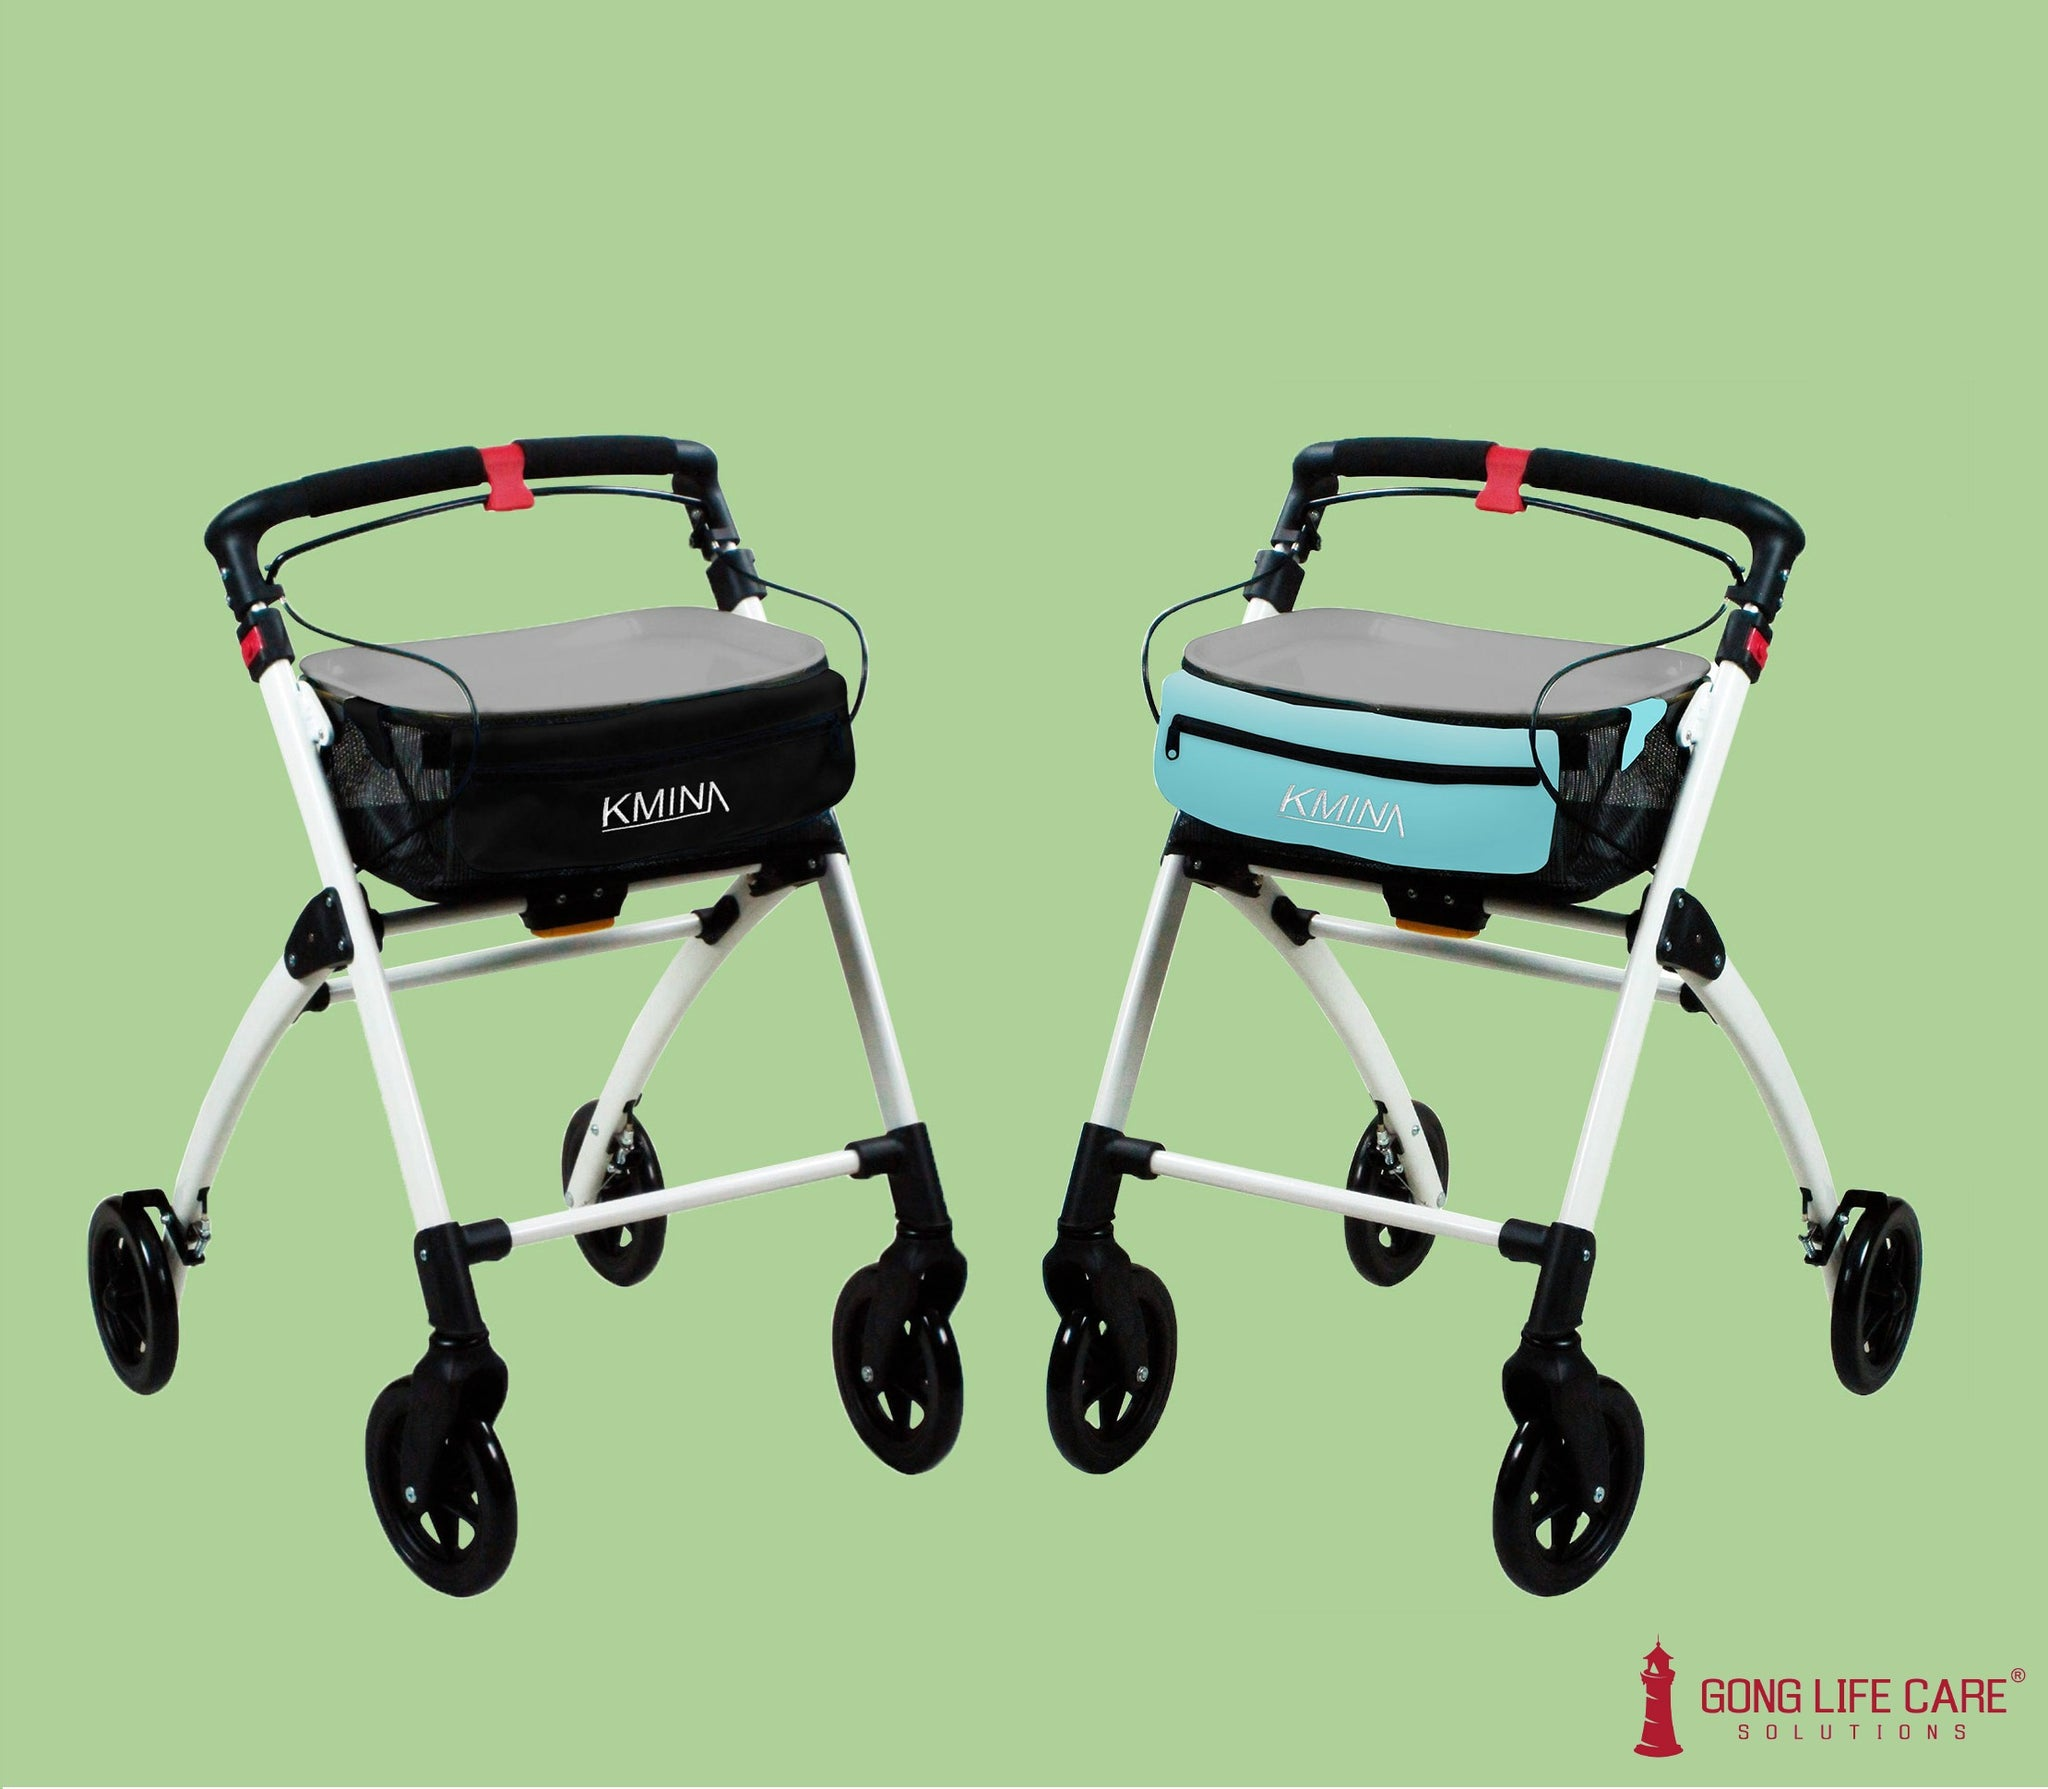 KMINA Rollators with black & blue basket